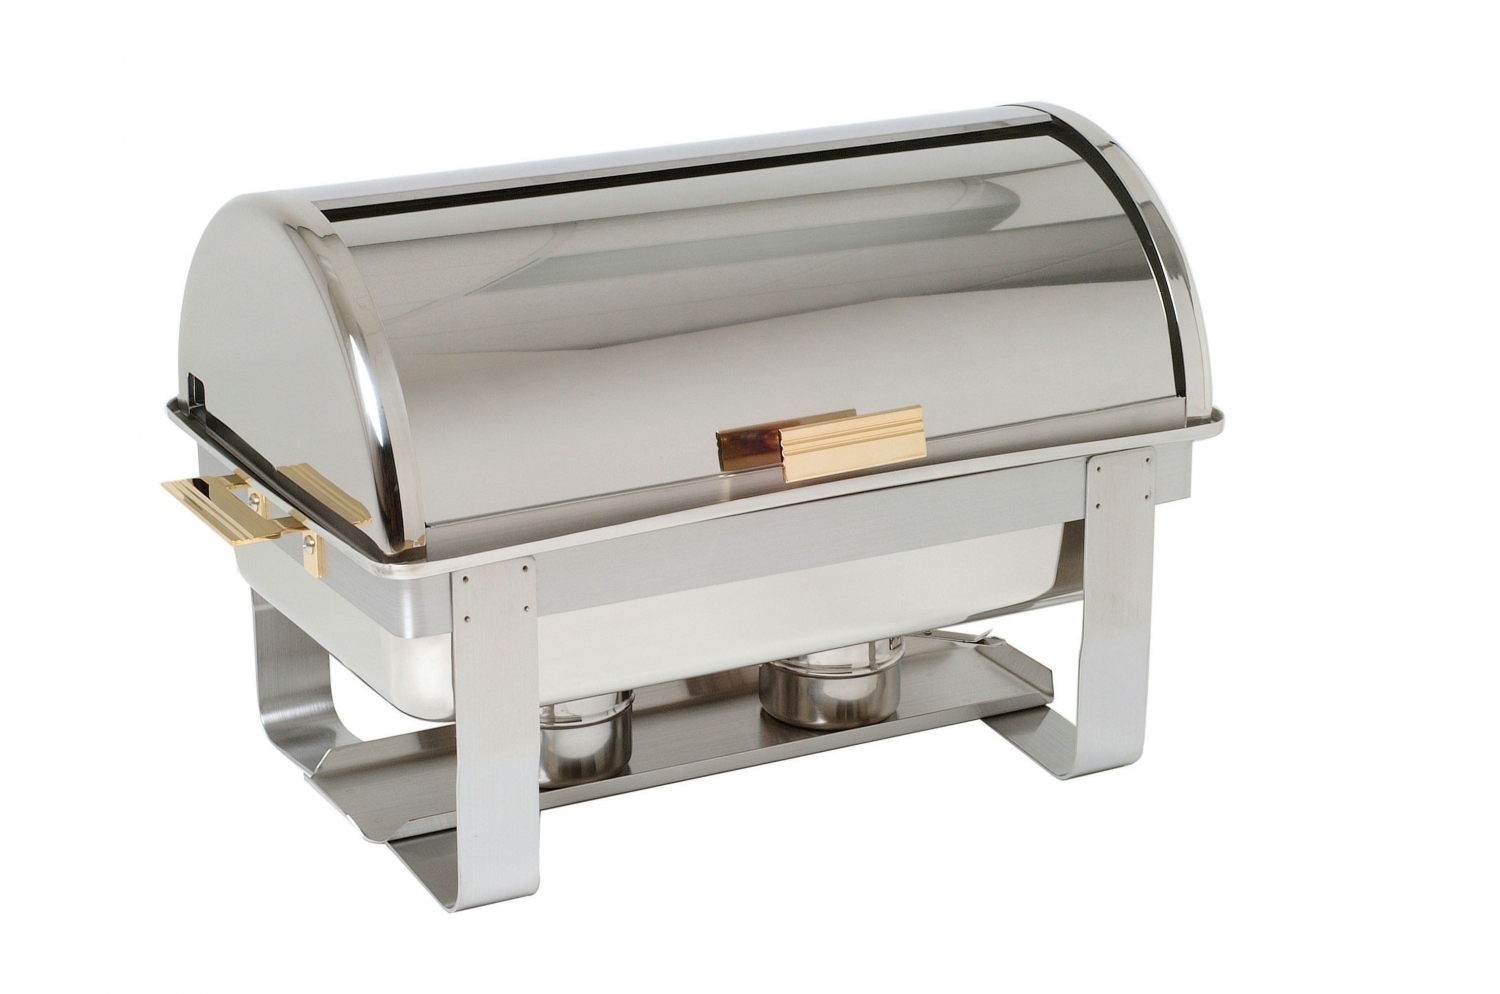 Johnson Rose 4830 Roll Top Chafer